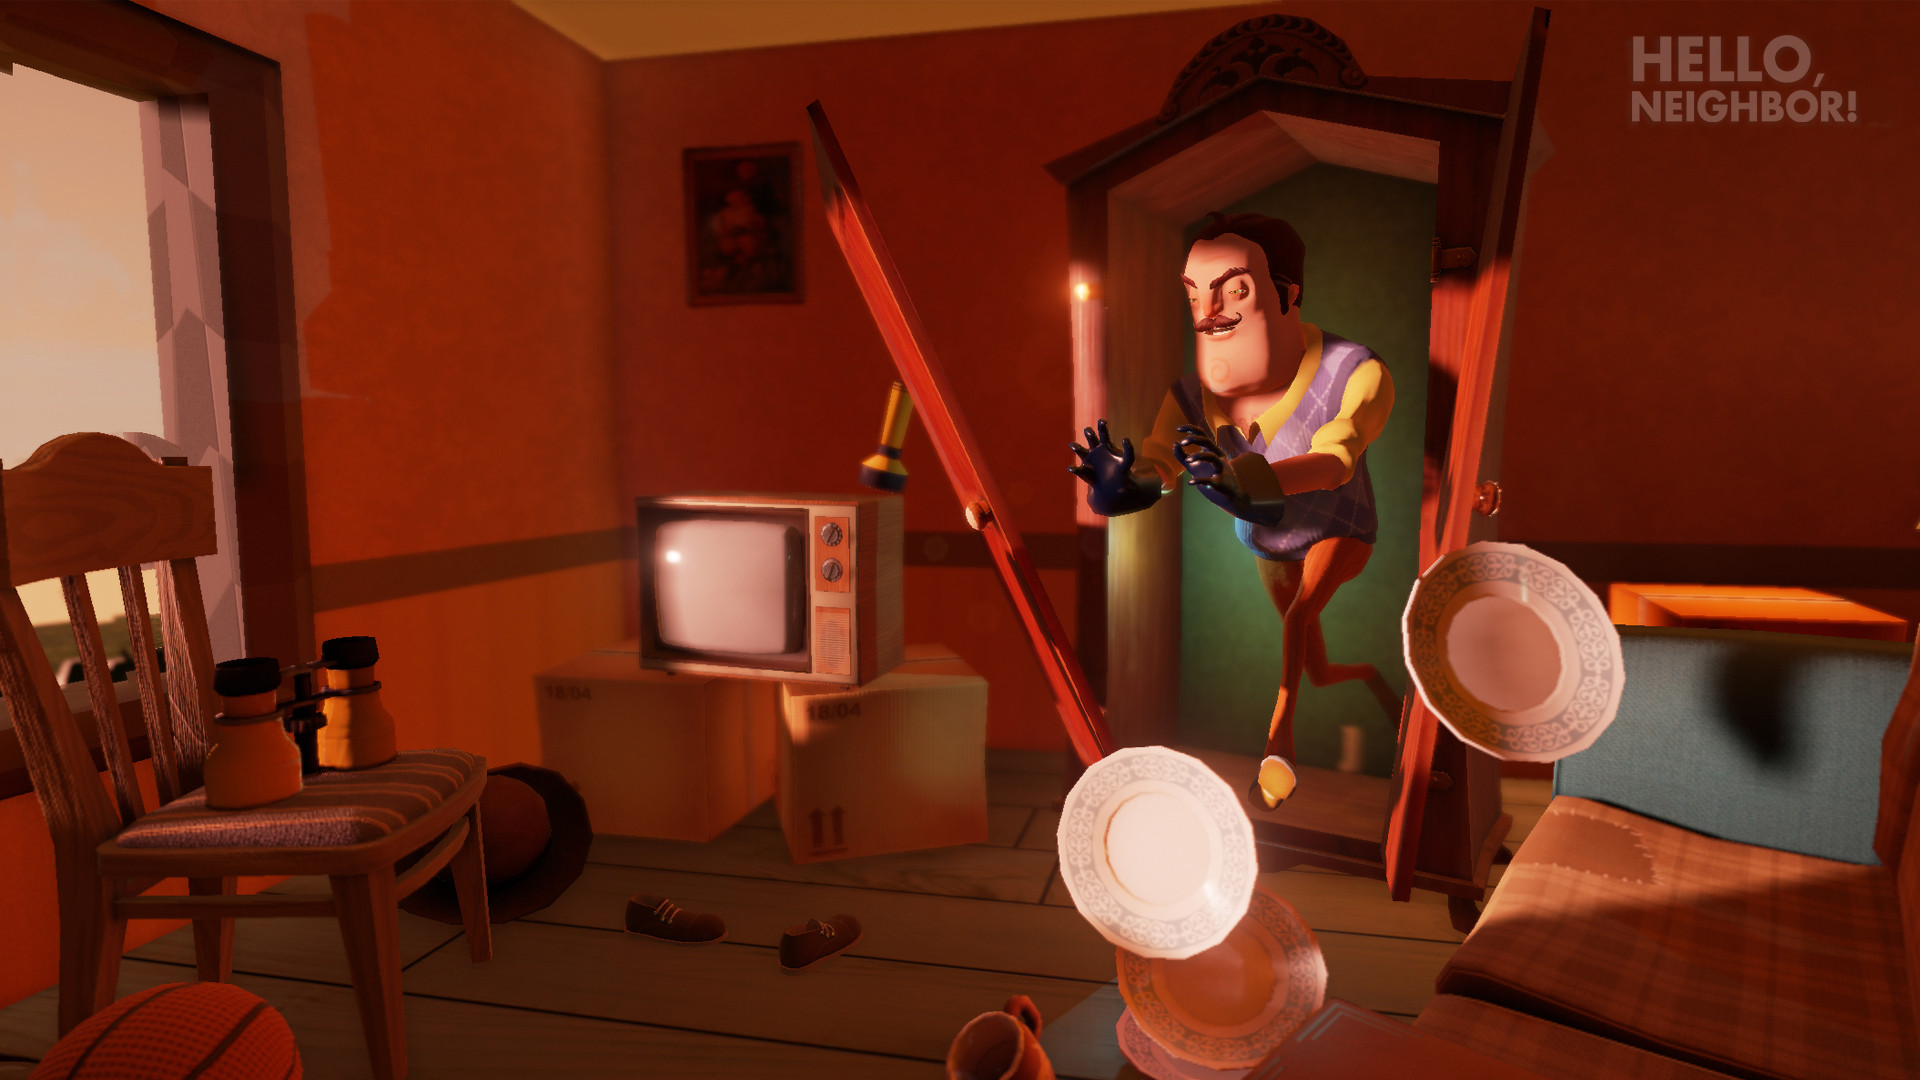 Official Hello Neighbor Wiki